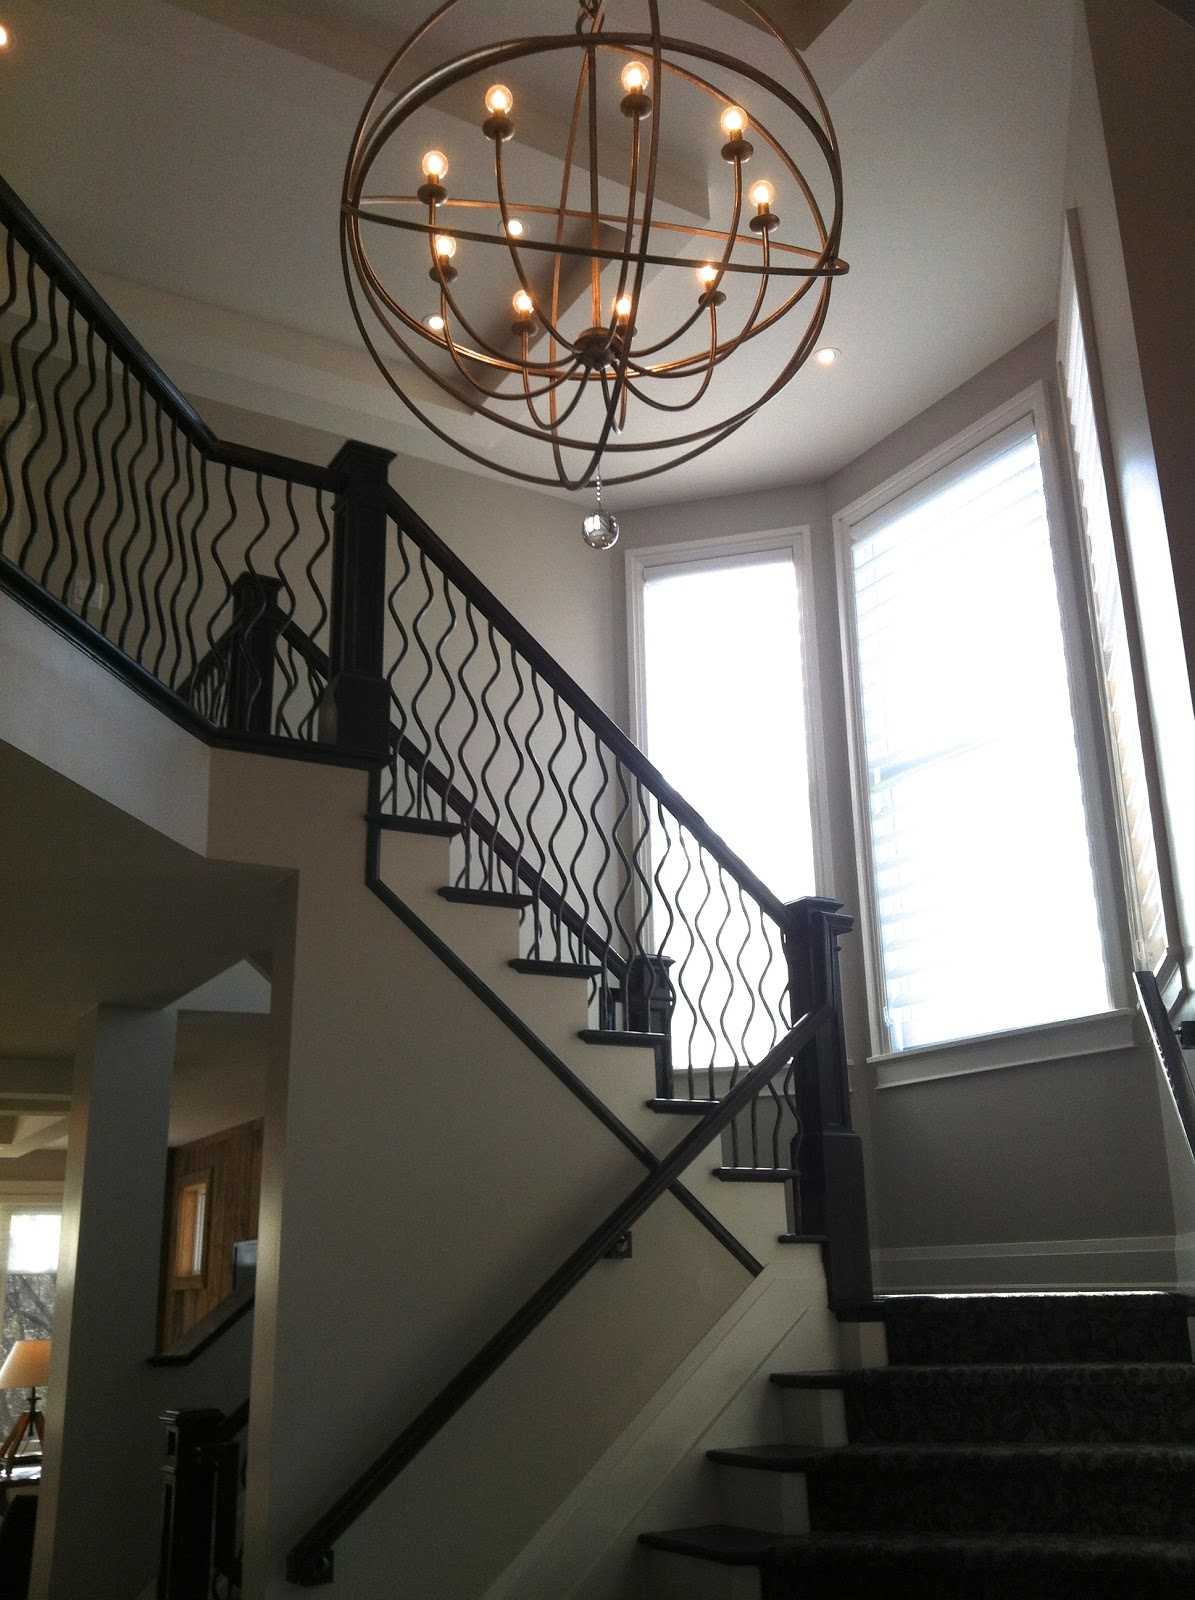 Decor Tips Greet Your Guest With Dazzling Foyer Chandeliers With Regard To Staircase Chandeliers (Image 5 of 15)